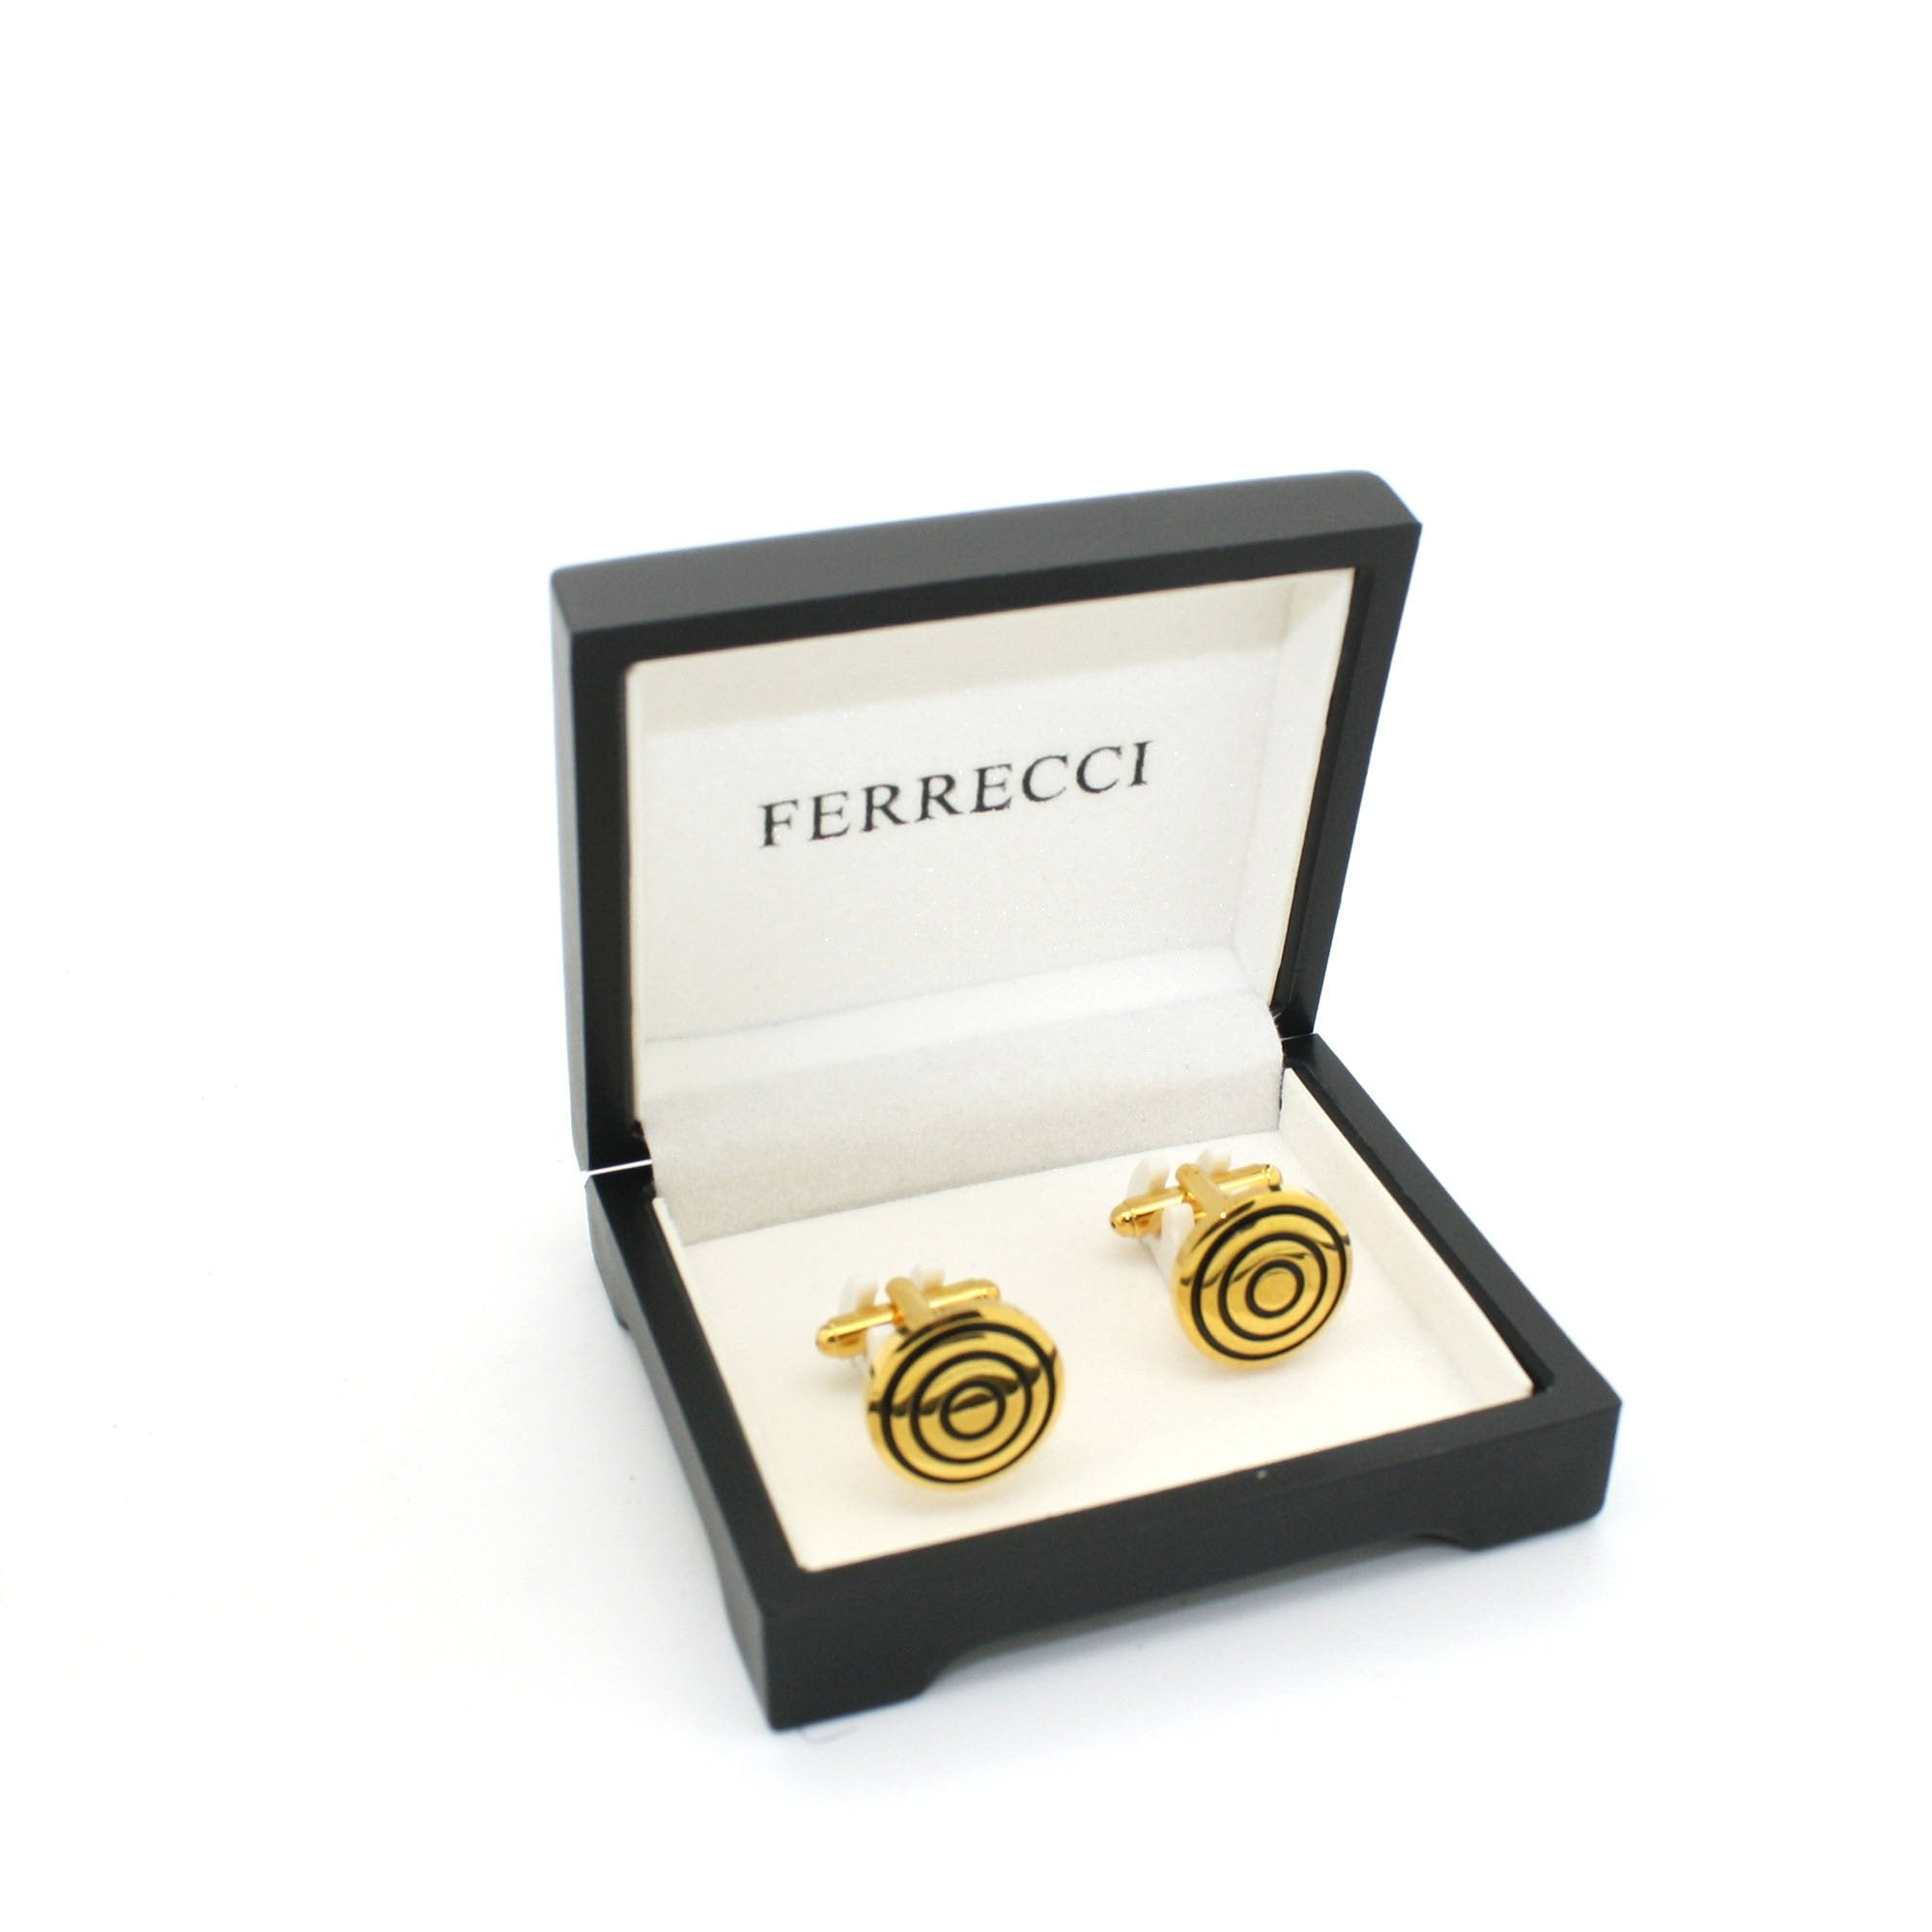 Goldtone Round Cuff Links With Jewelry Box - Giorgio's Menswear